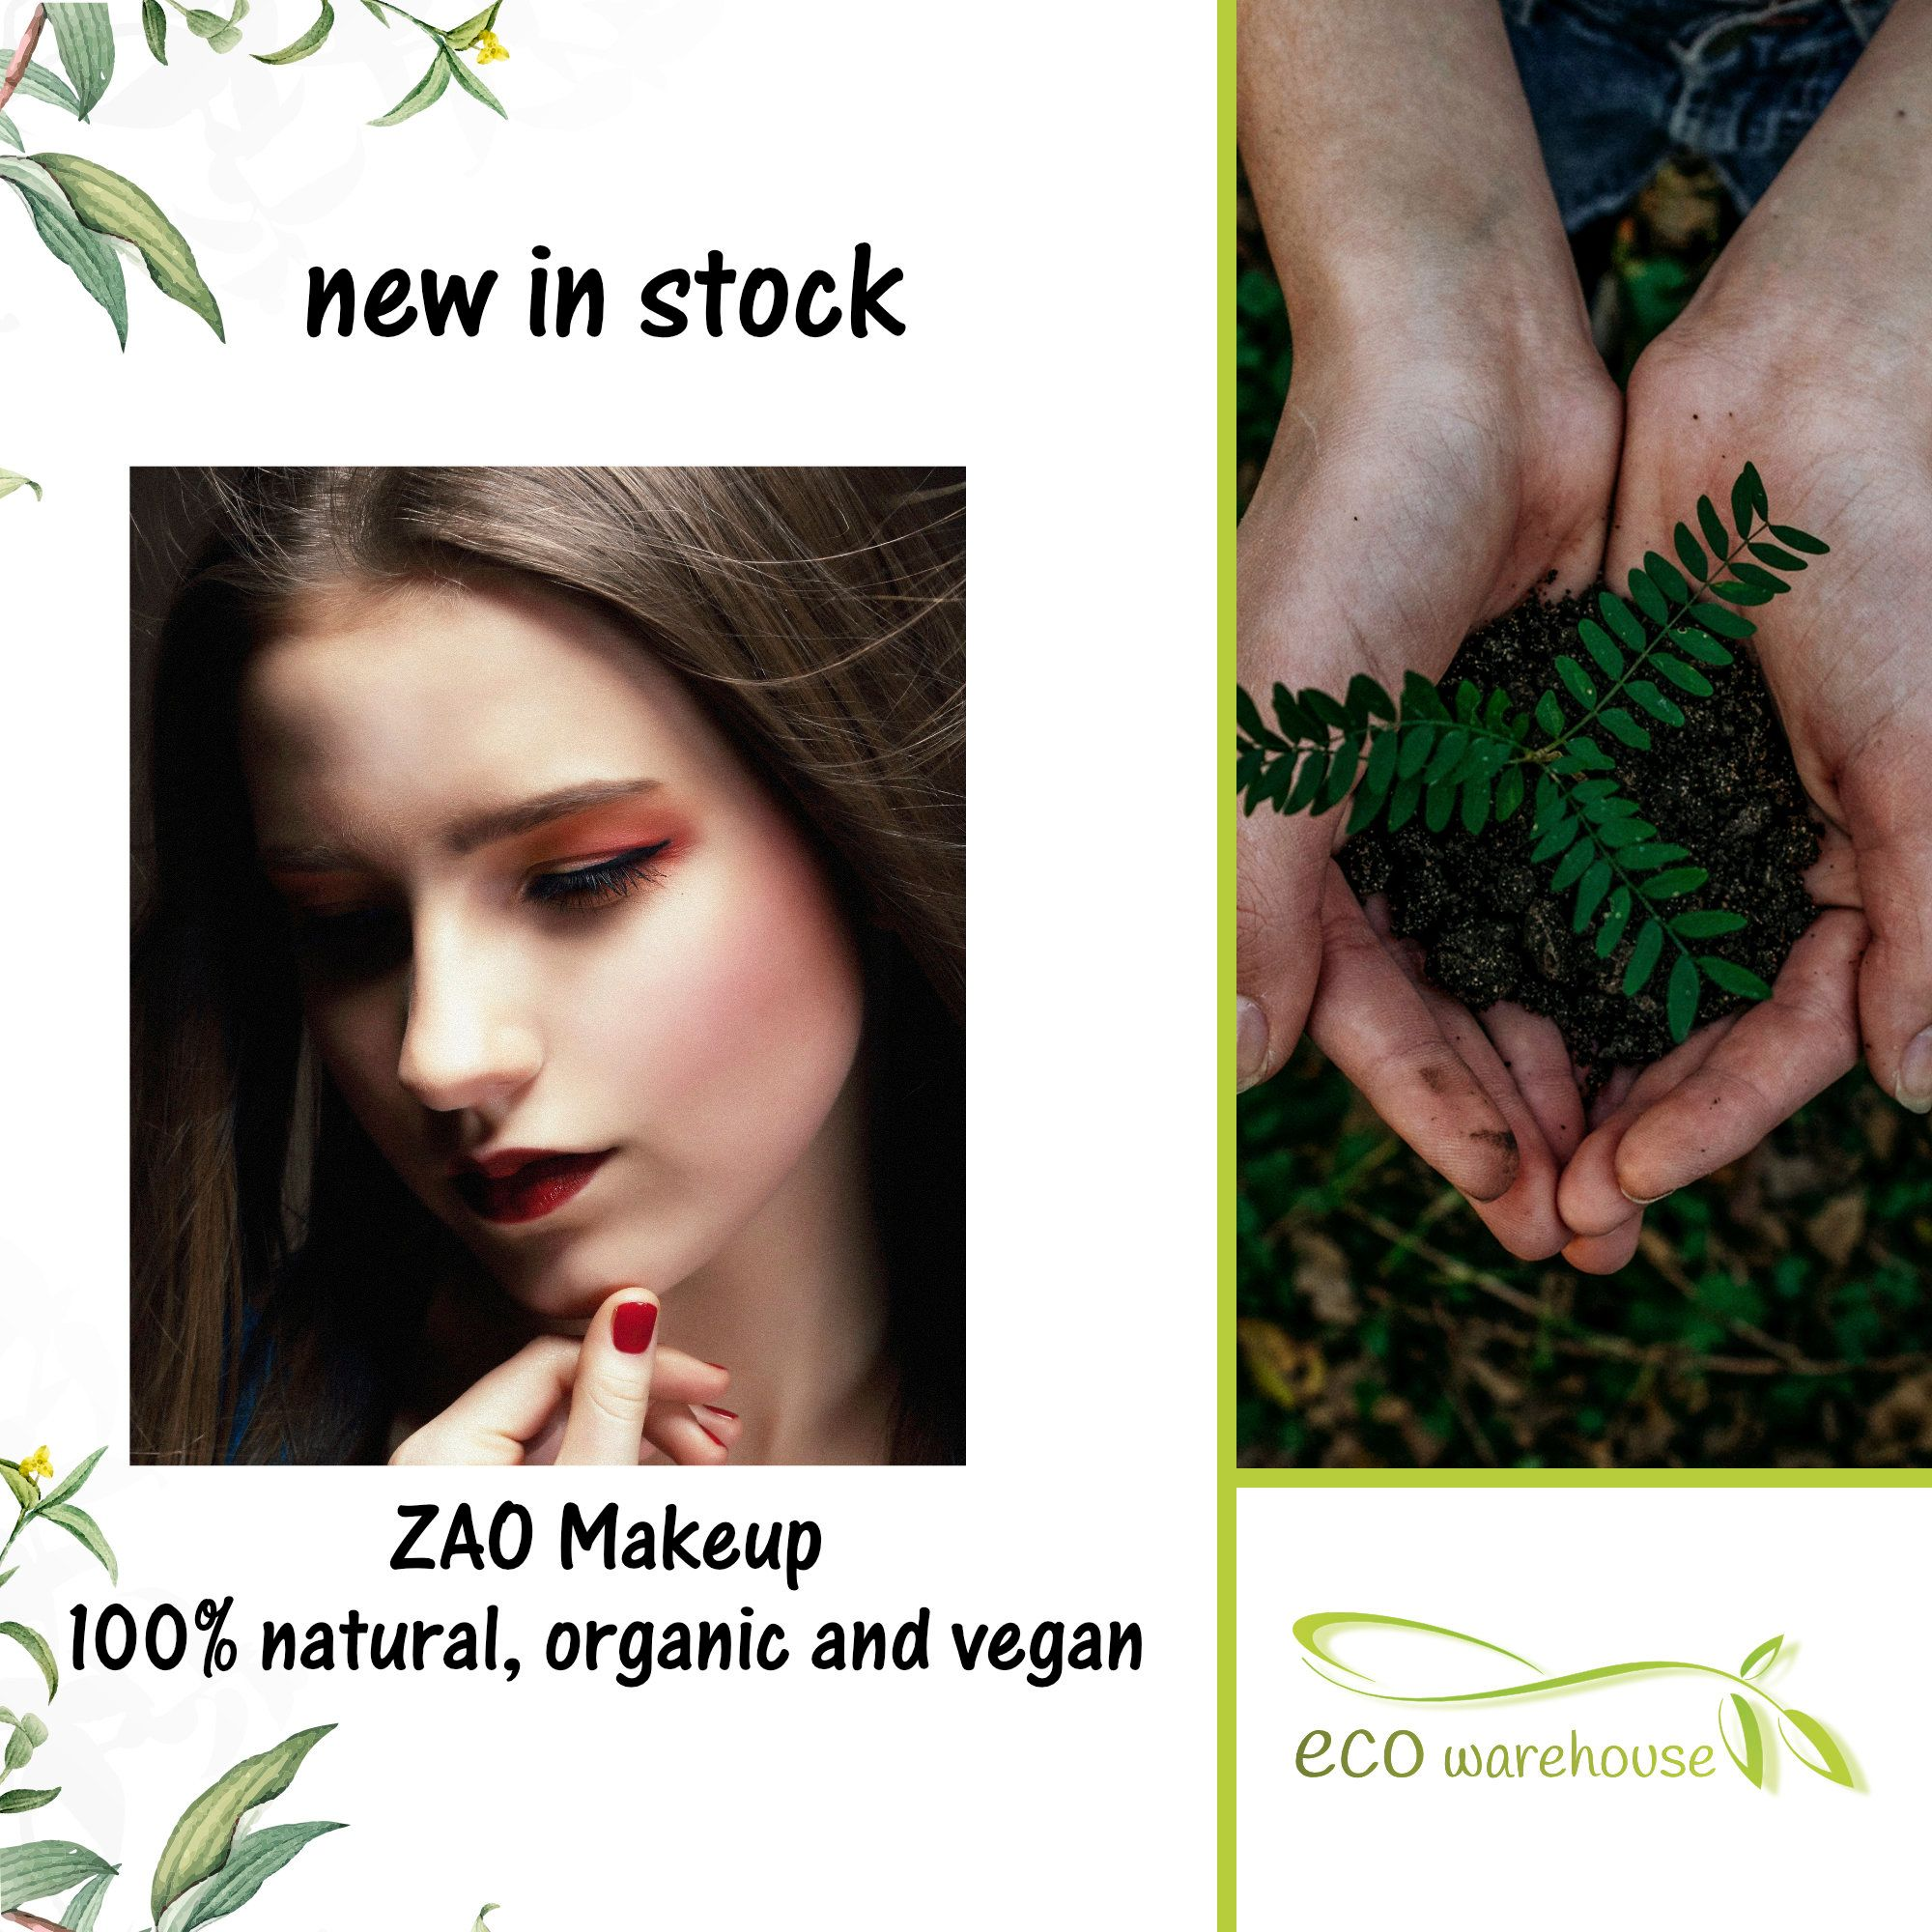 NEW in stock Zao Makeup. An ecoluxury makeup brand made